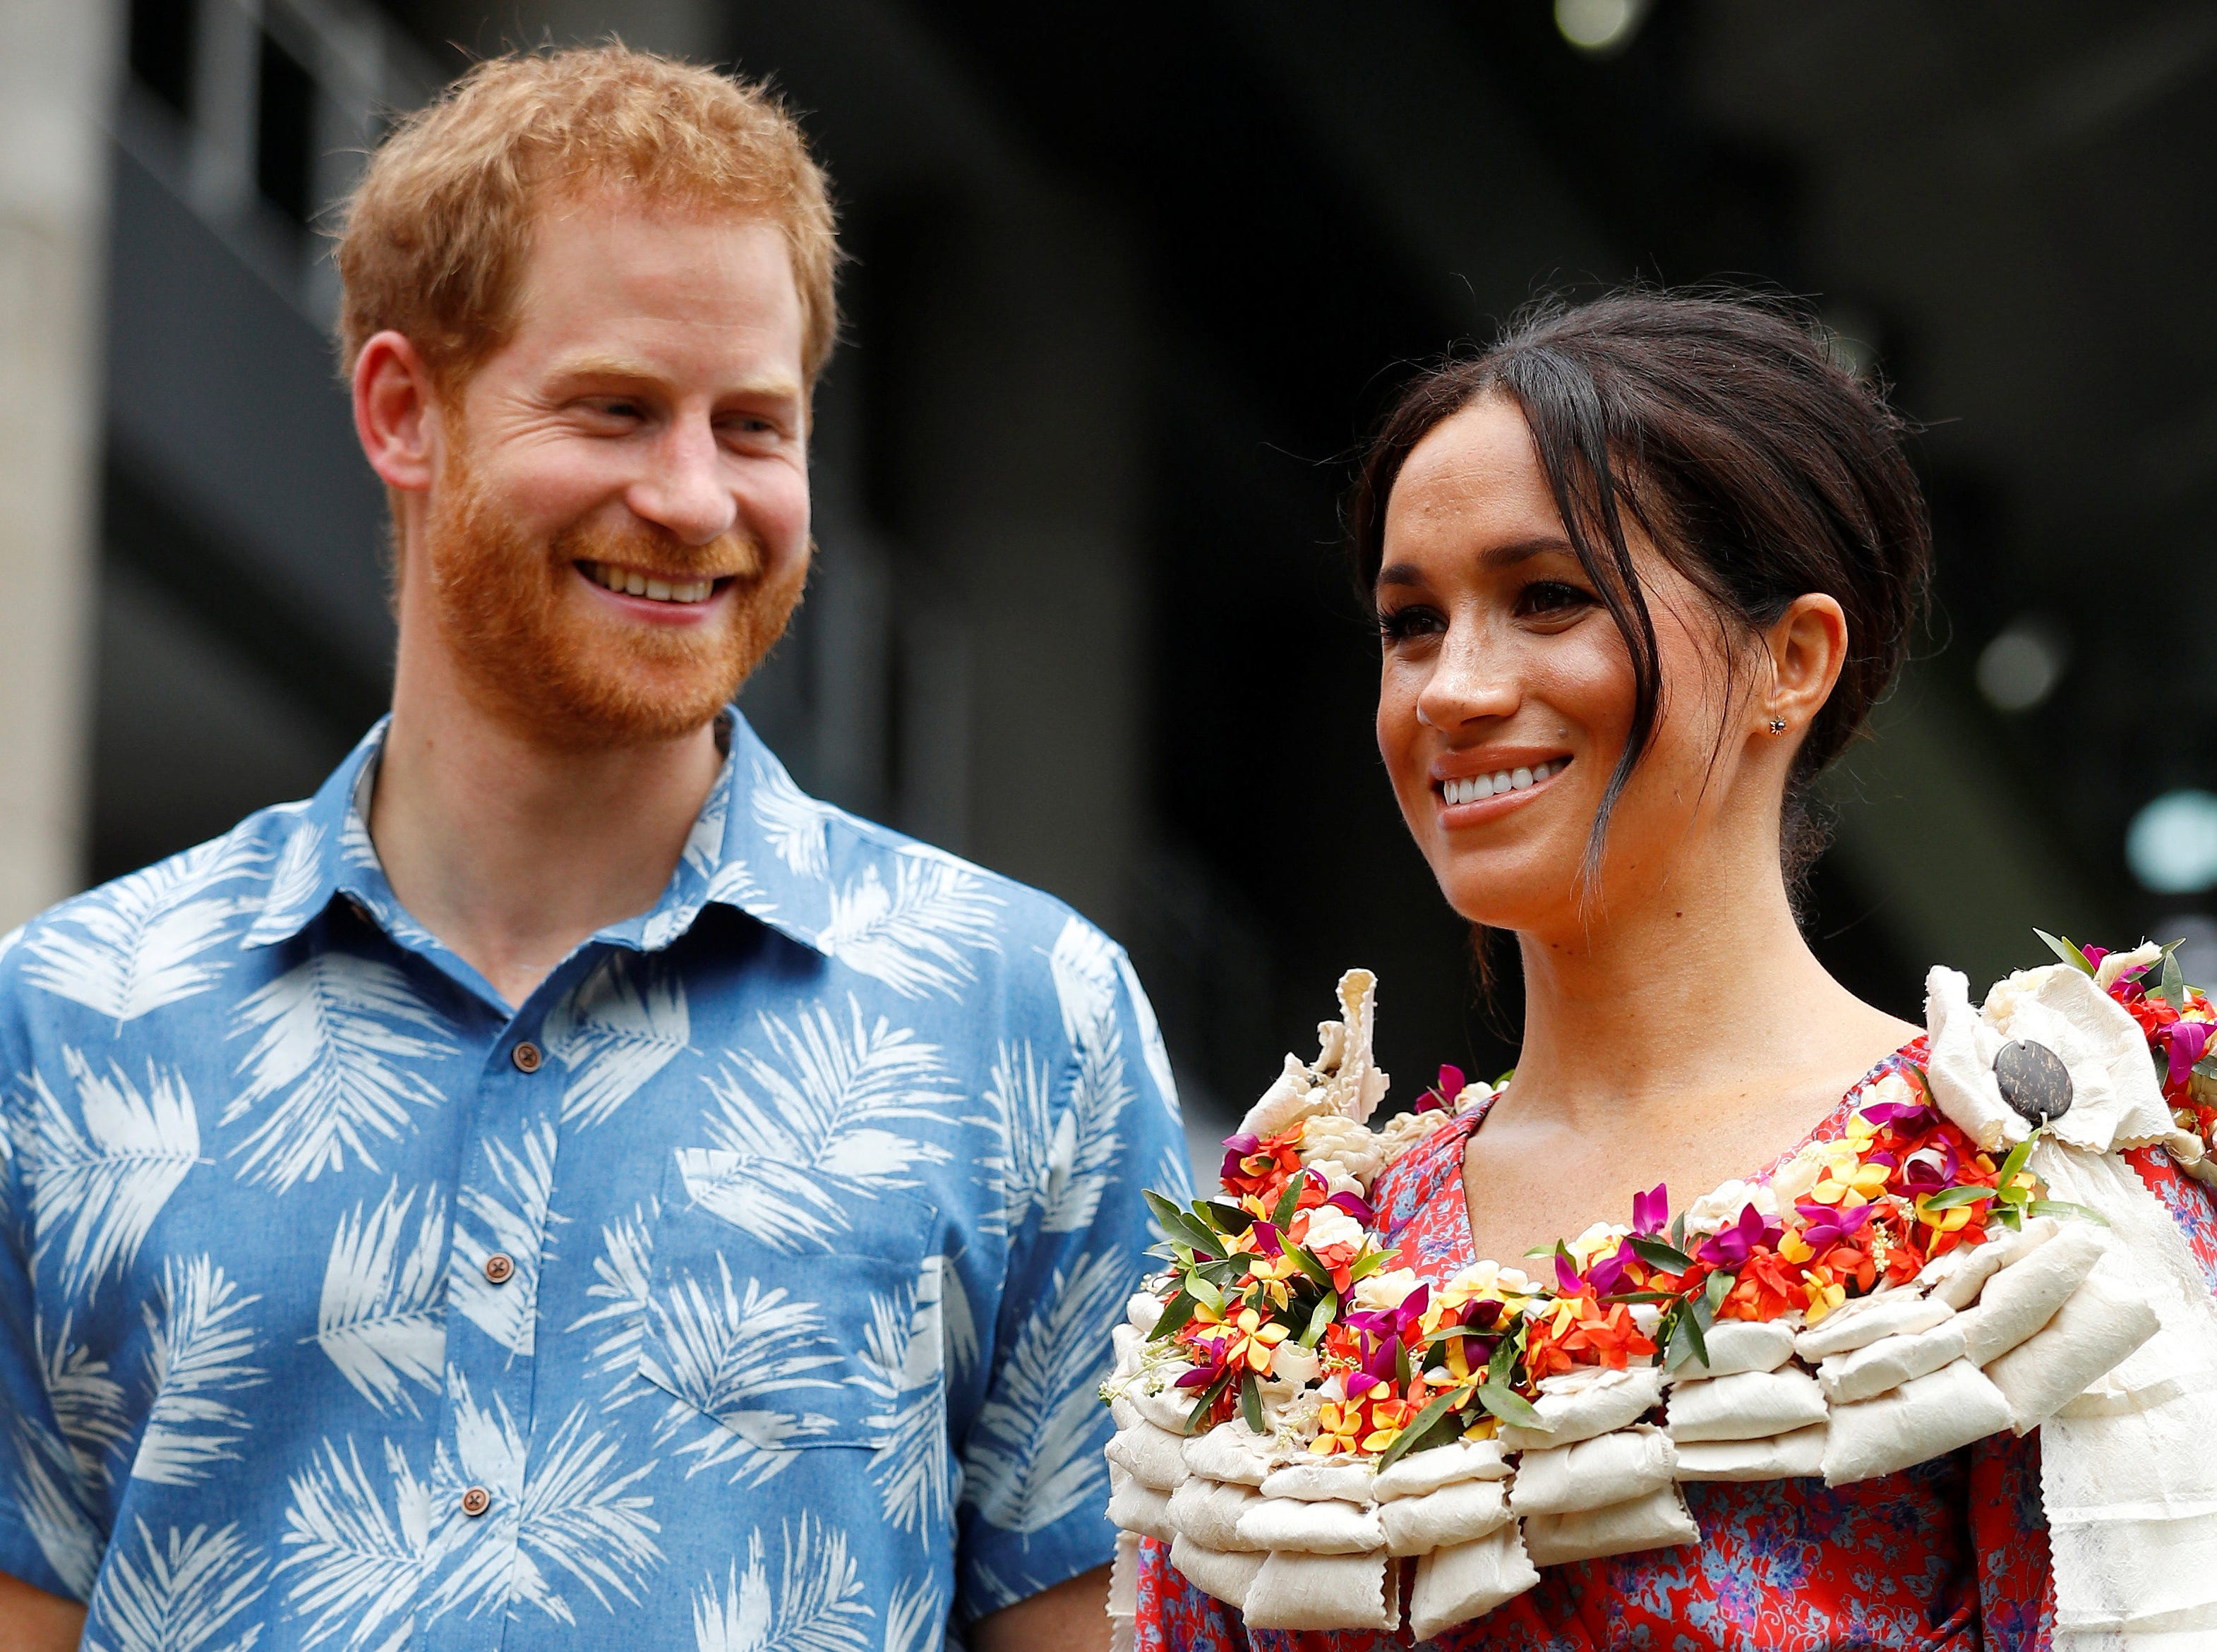 Prince Harry, Duke of Sussex and Meghan, Duchess of Sussex visit the University of the South Pacific on October 24, 2018 in Suva, Fiji. The Duke and Duchess of Sussex are on their official 16-day Autumn tour visiting cities in Australia, Fiji, Tonga and New Zealand.